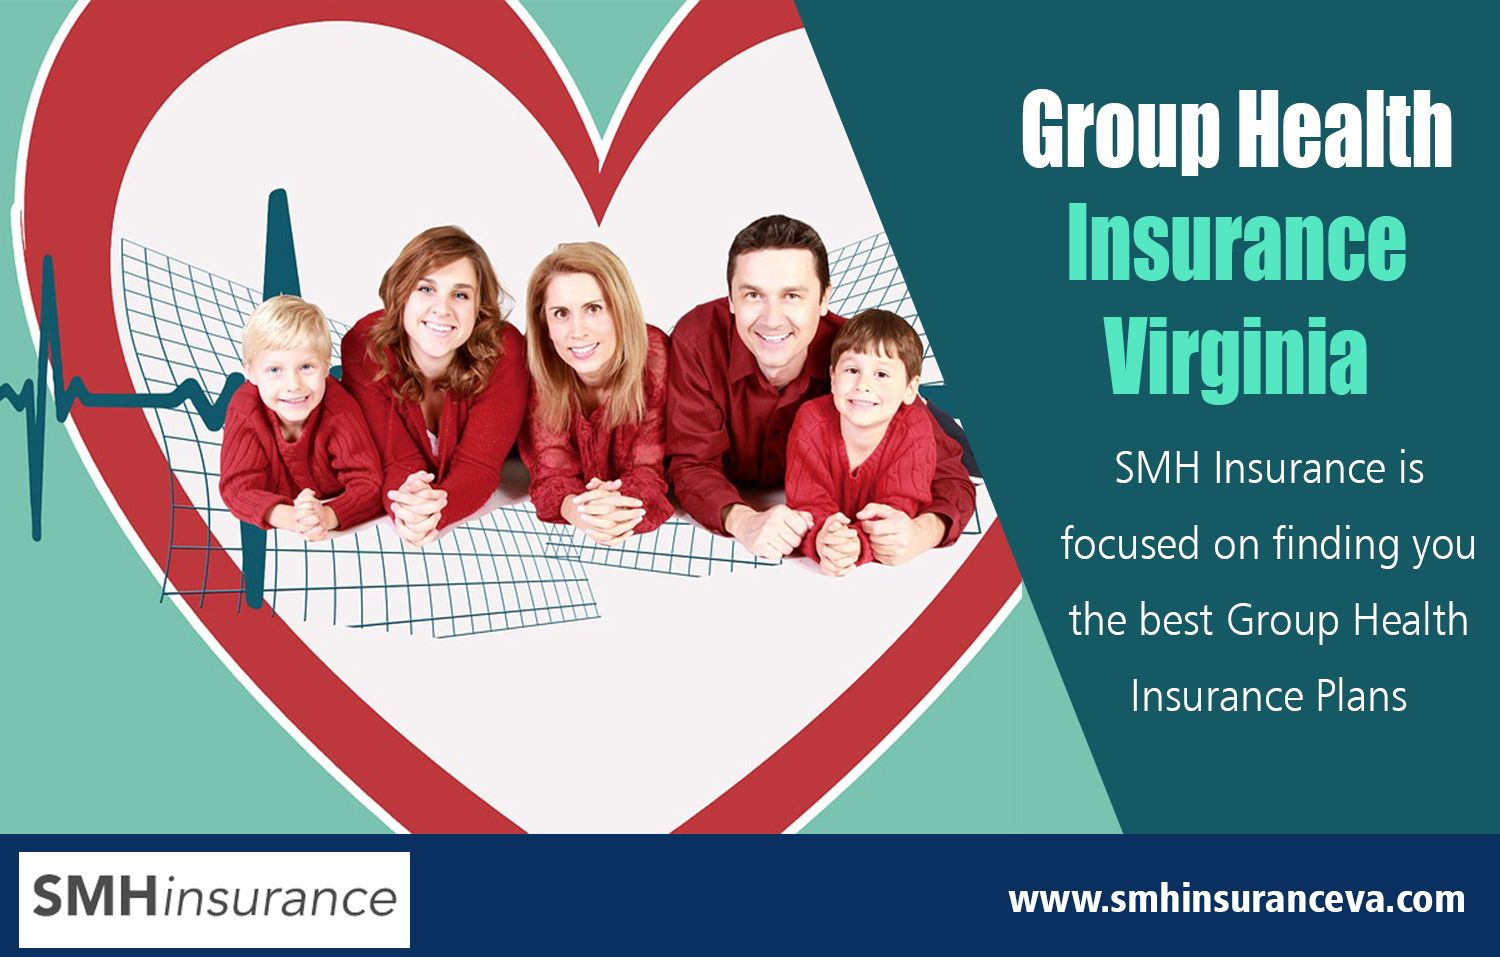 Http Www Smhinsuranceva Com Insurance Products We Offer Group